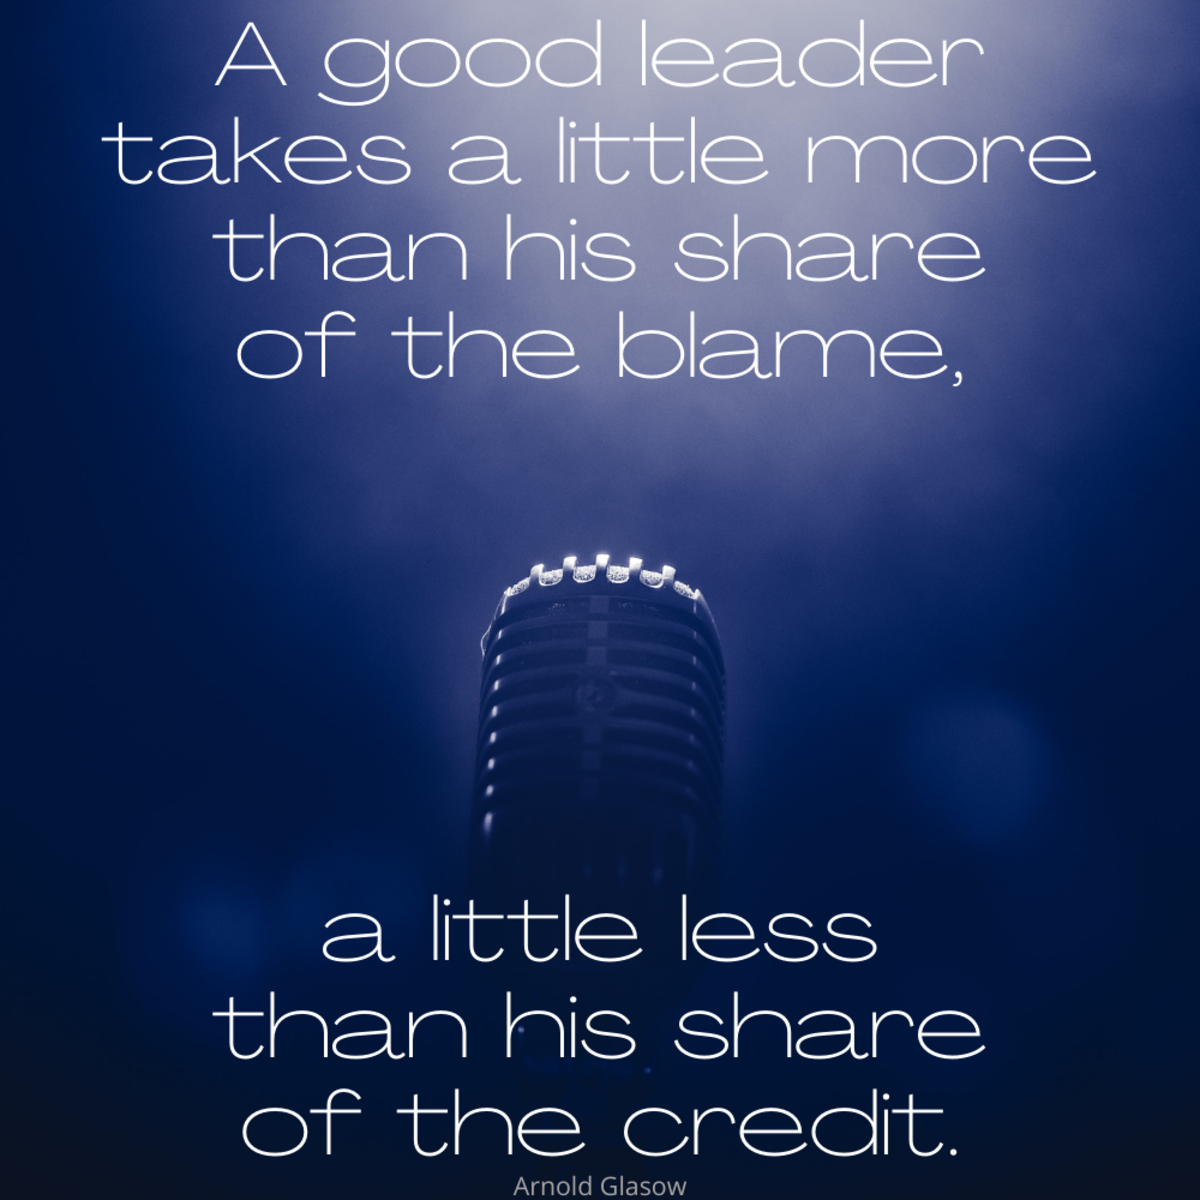 """A good leader takes a little more than his share of the blame, a little less than his share of the credit."" Arnold Glasow"